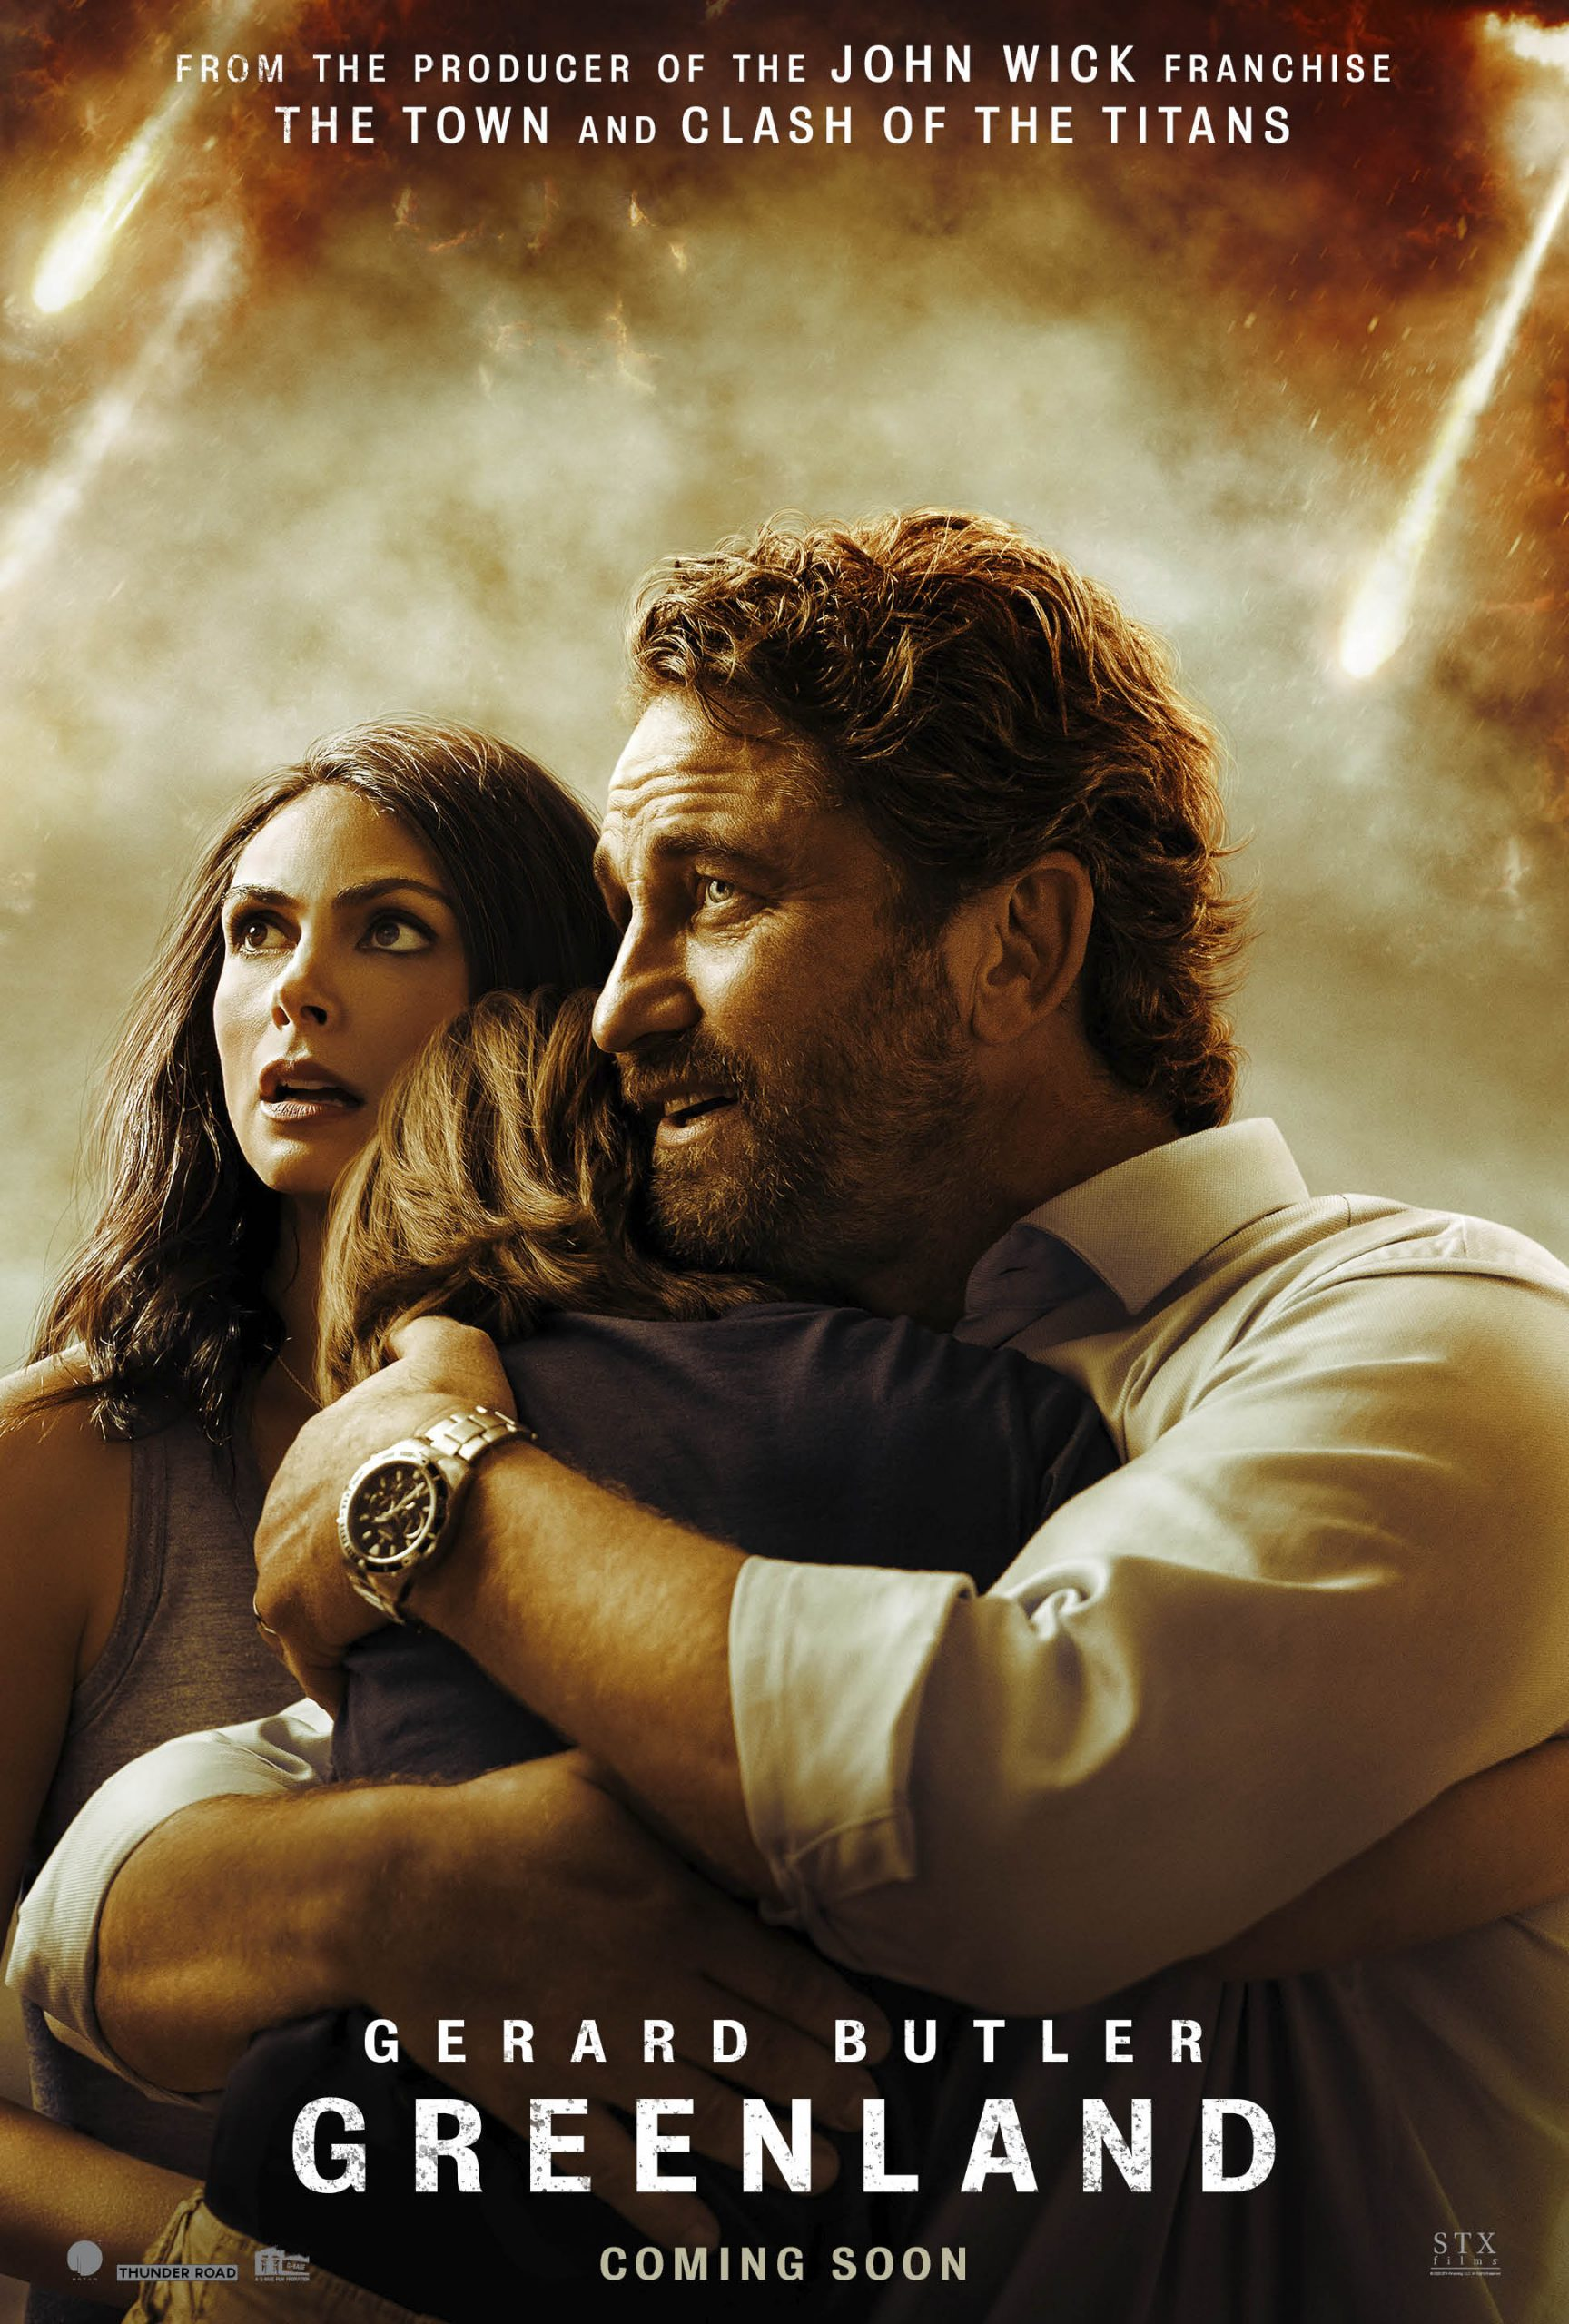 Gerard Butler tries to survive in the Greenland trailer